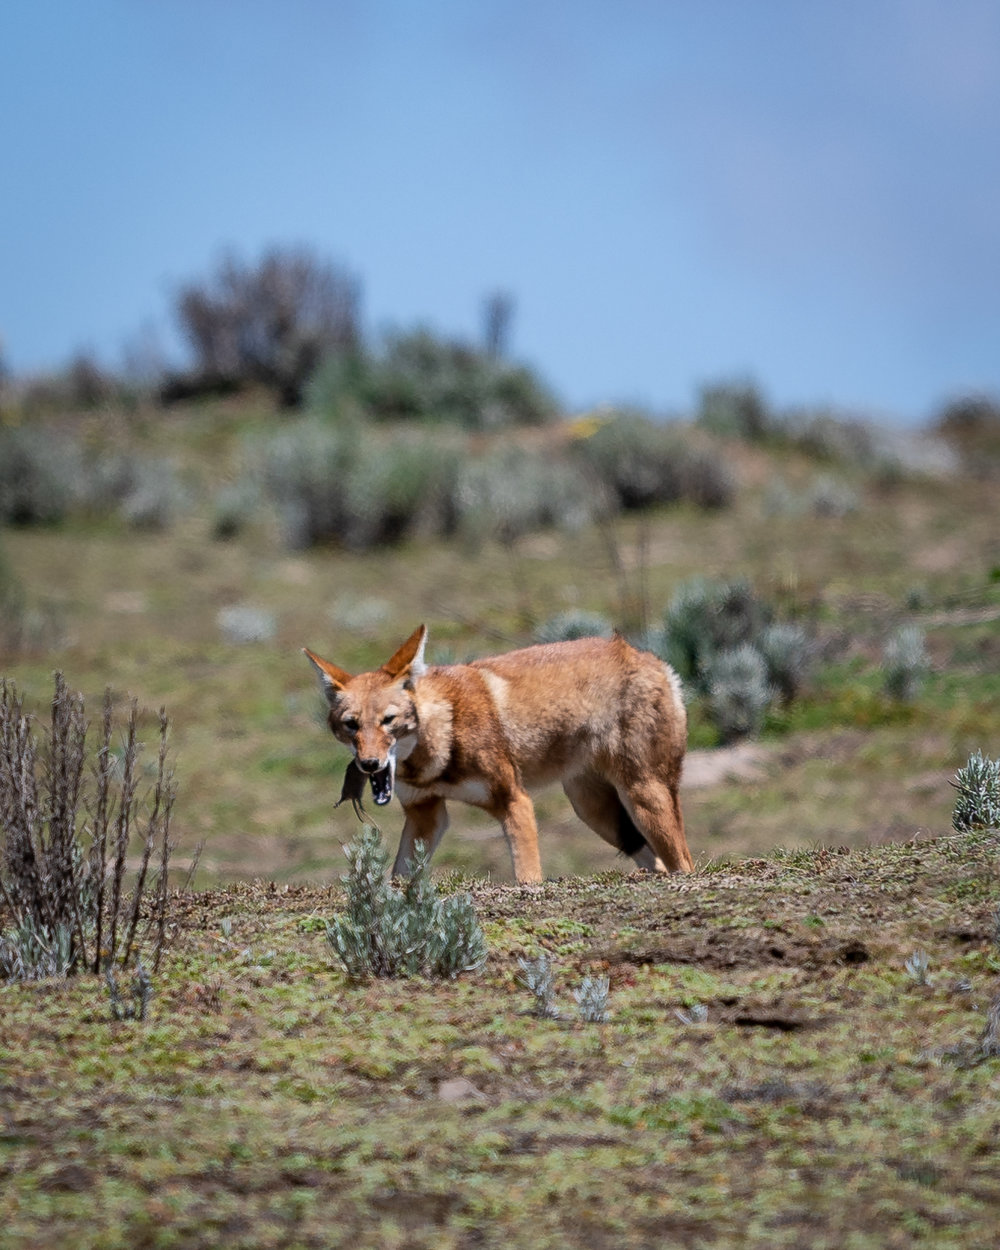 Ethiopian Wolf snacking on Giant Mole Rat in the Sanetti Plateau